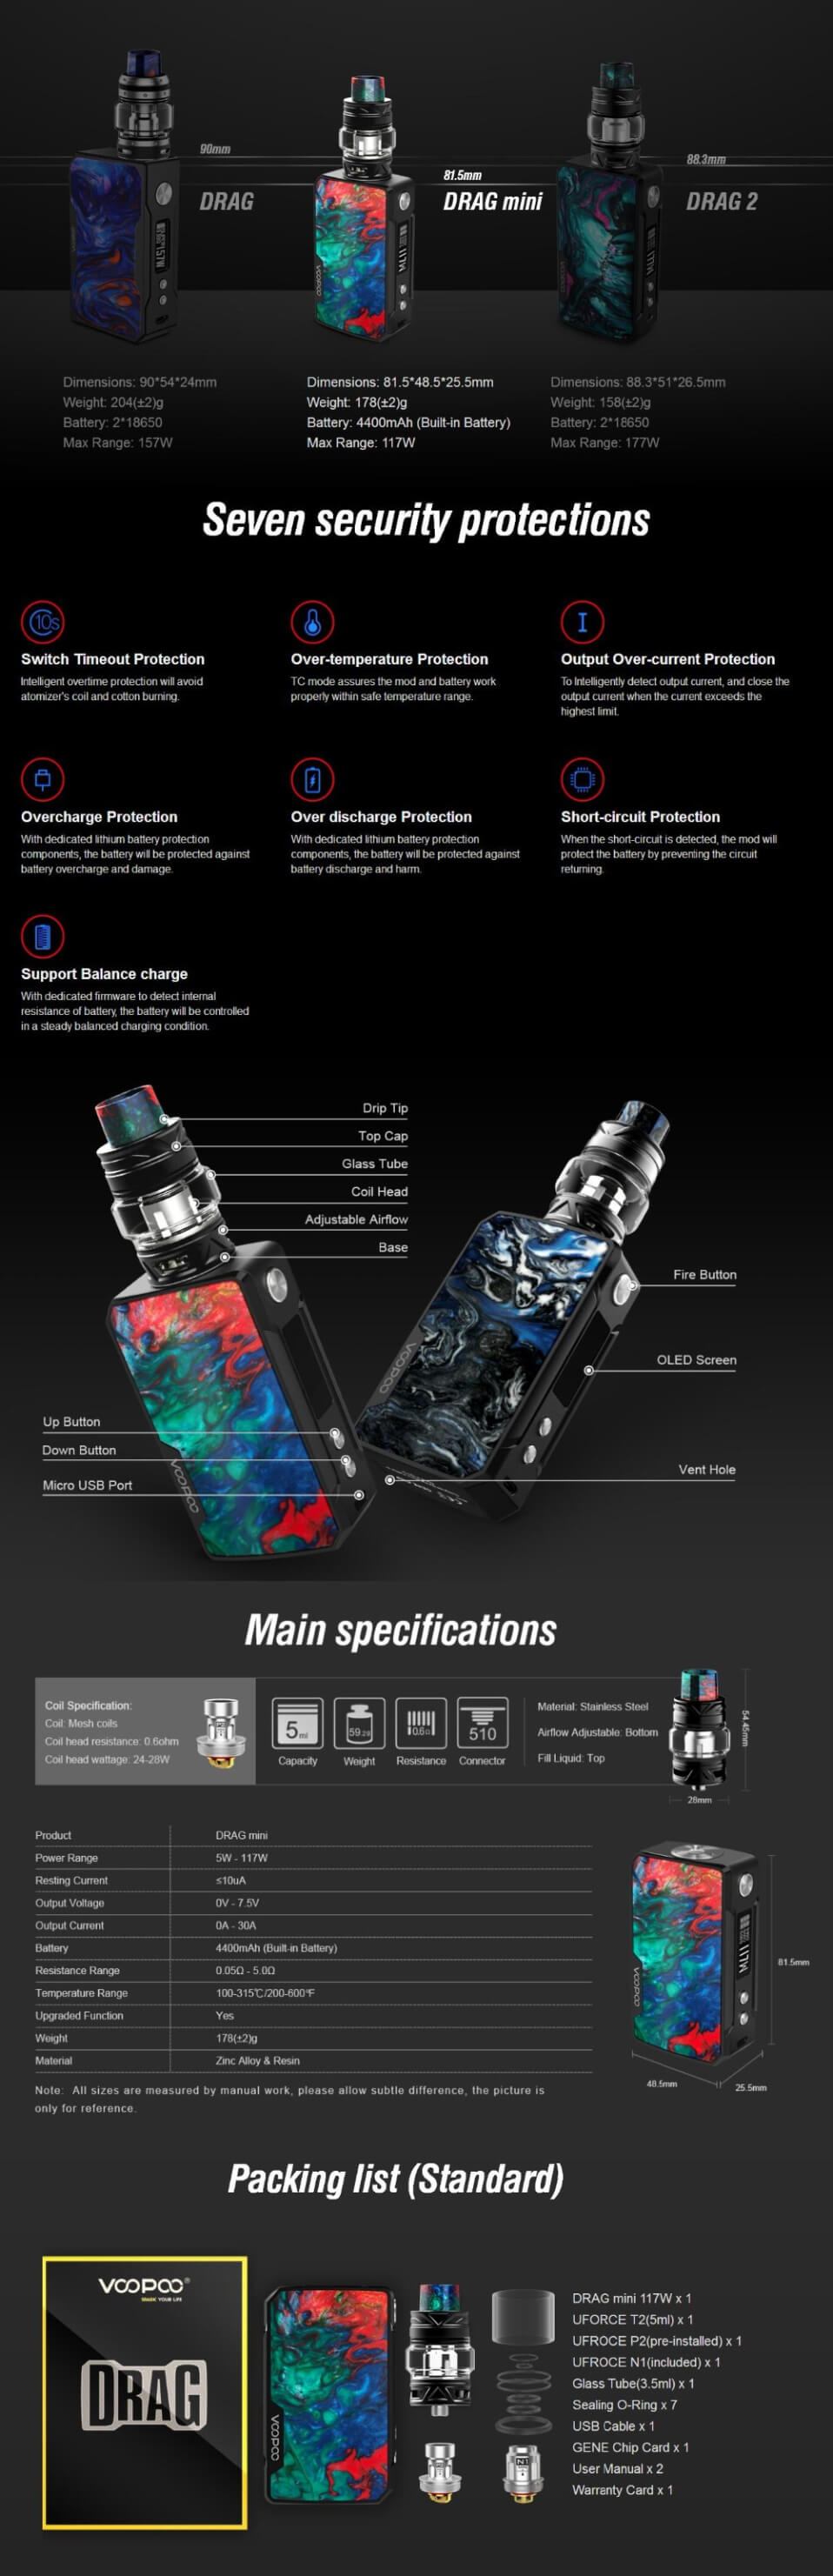 VOOPOO Drag Mini Platinum TC Mod Kit Specification, Components & Kit Includes